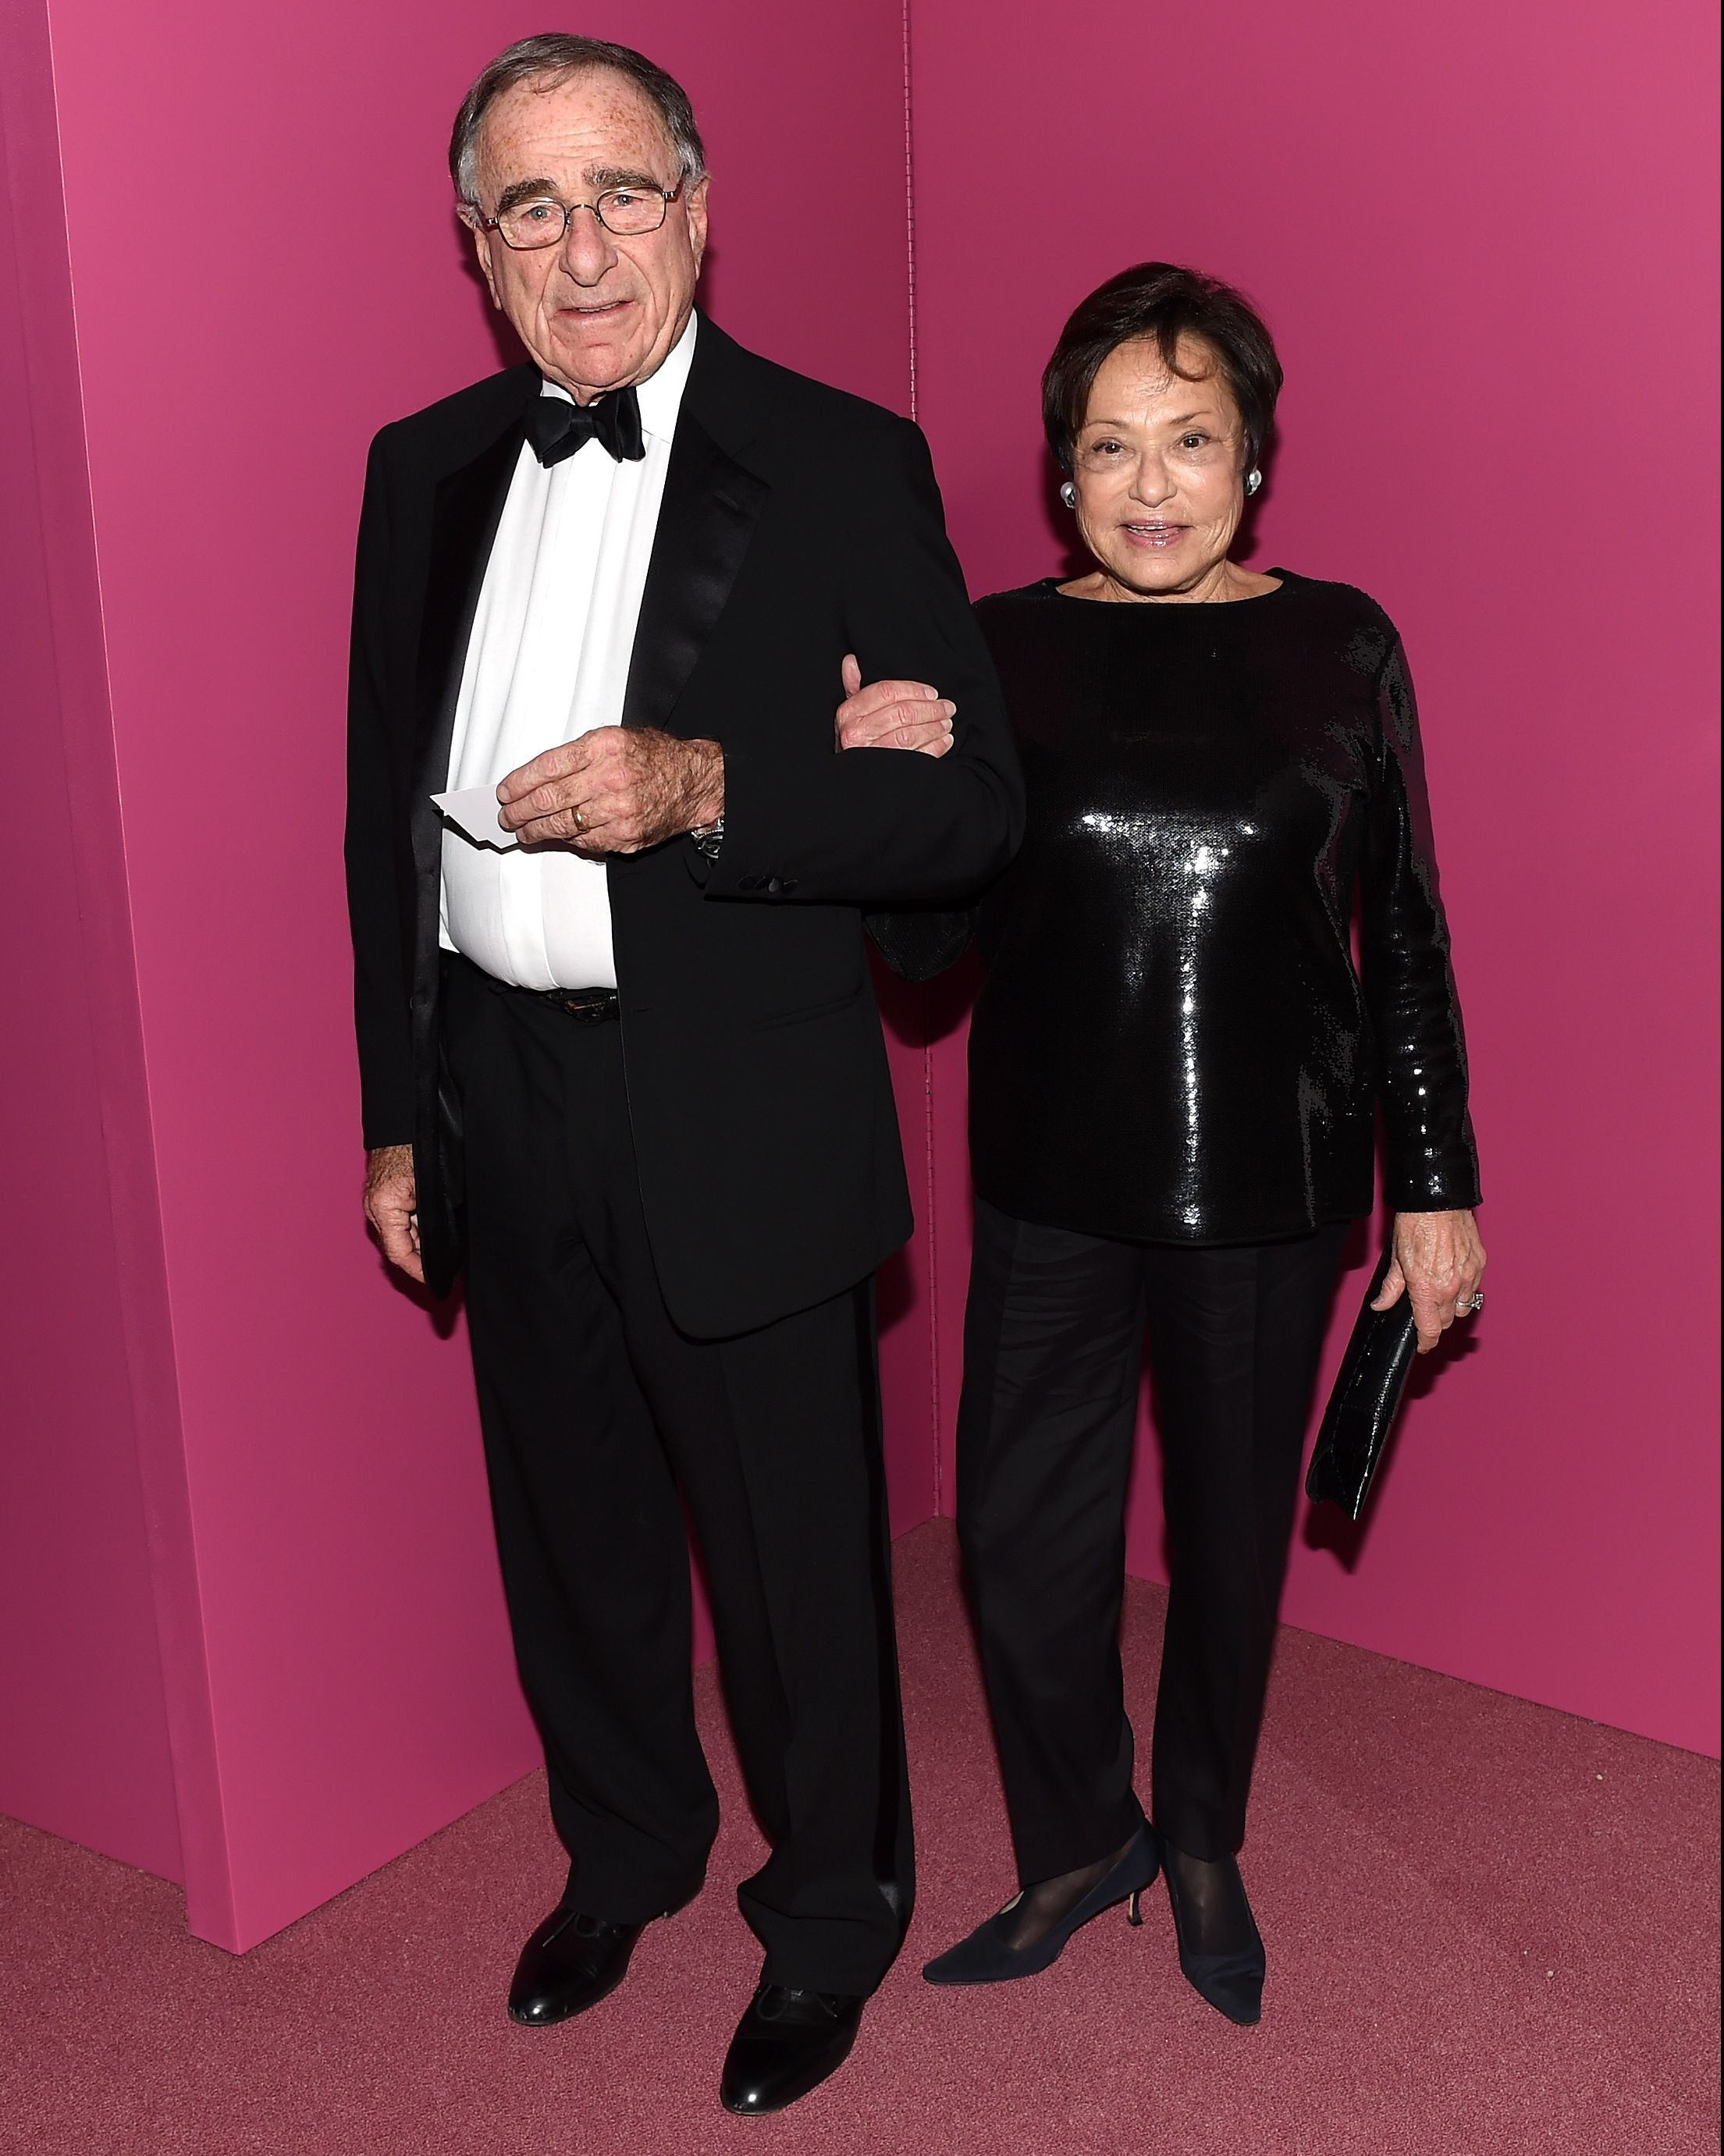 Harry and Linda Macklowe attending the 2015 Guggenheim International Gala Dinner.